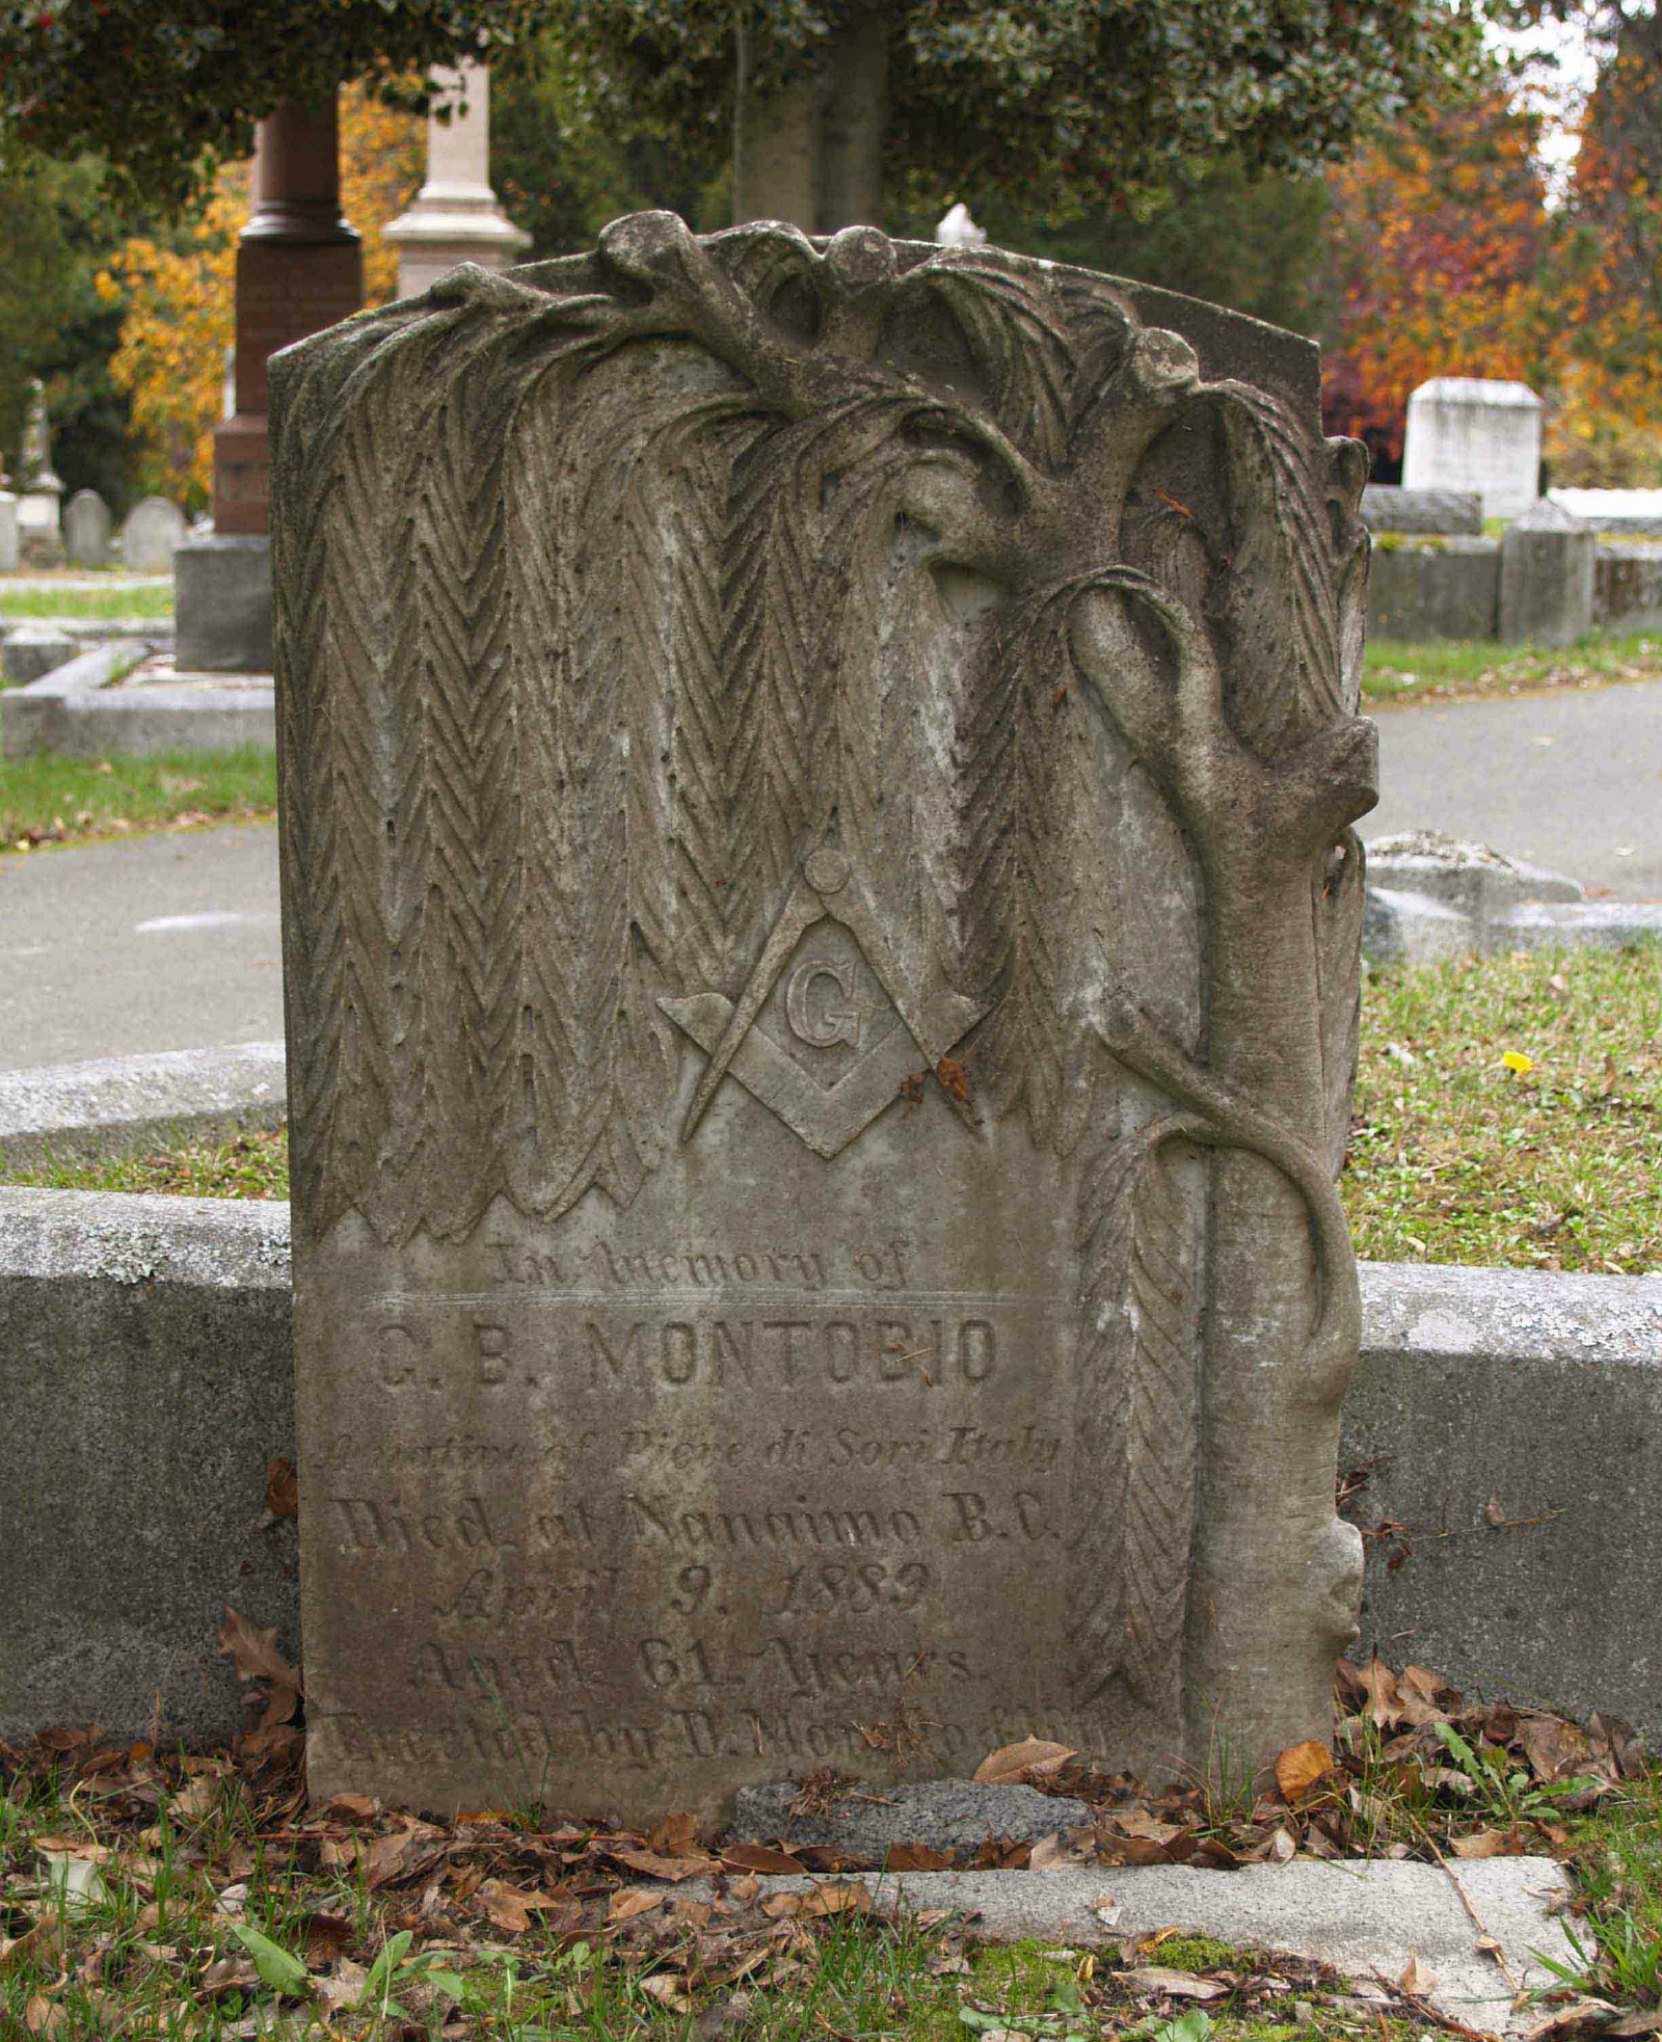 The grave stone of George B. Montobio (died 1889, aged 61) in Ross Bay Cemetery. This grave stone features the Square & Compasses and an Acacia tree. It is one of the pieces of Masonic grave monument art in Ross Bay Cemetery.